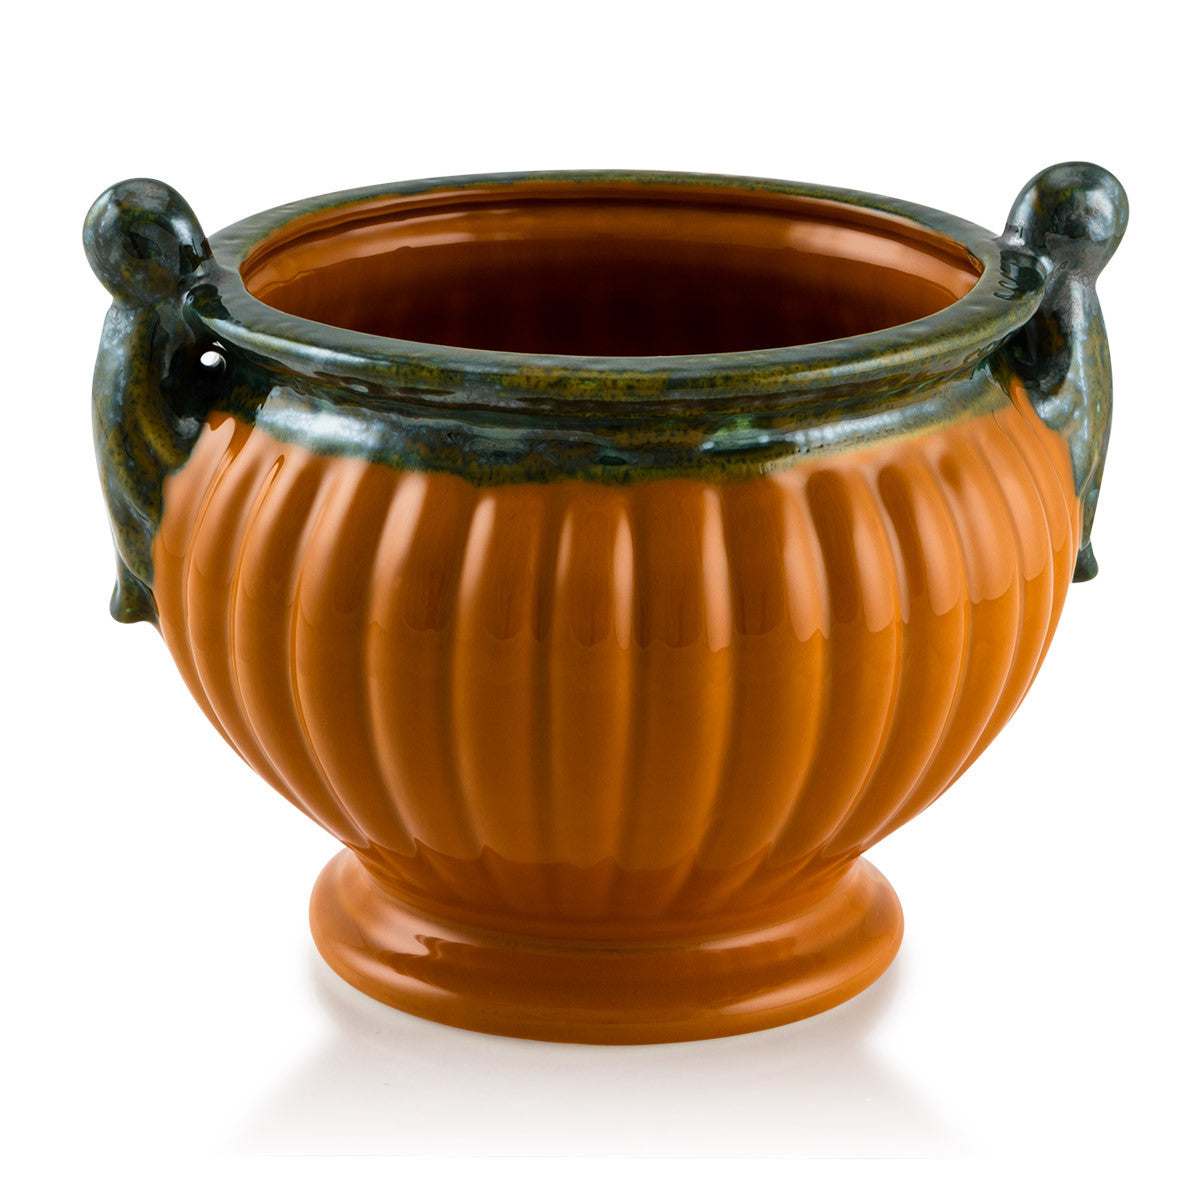 Ceramic ribbed cachepot with handles in orange color